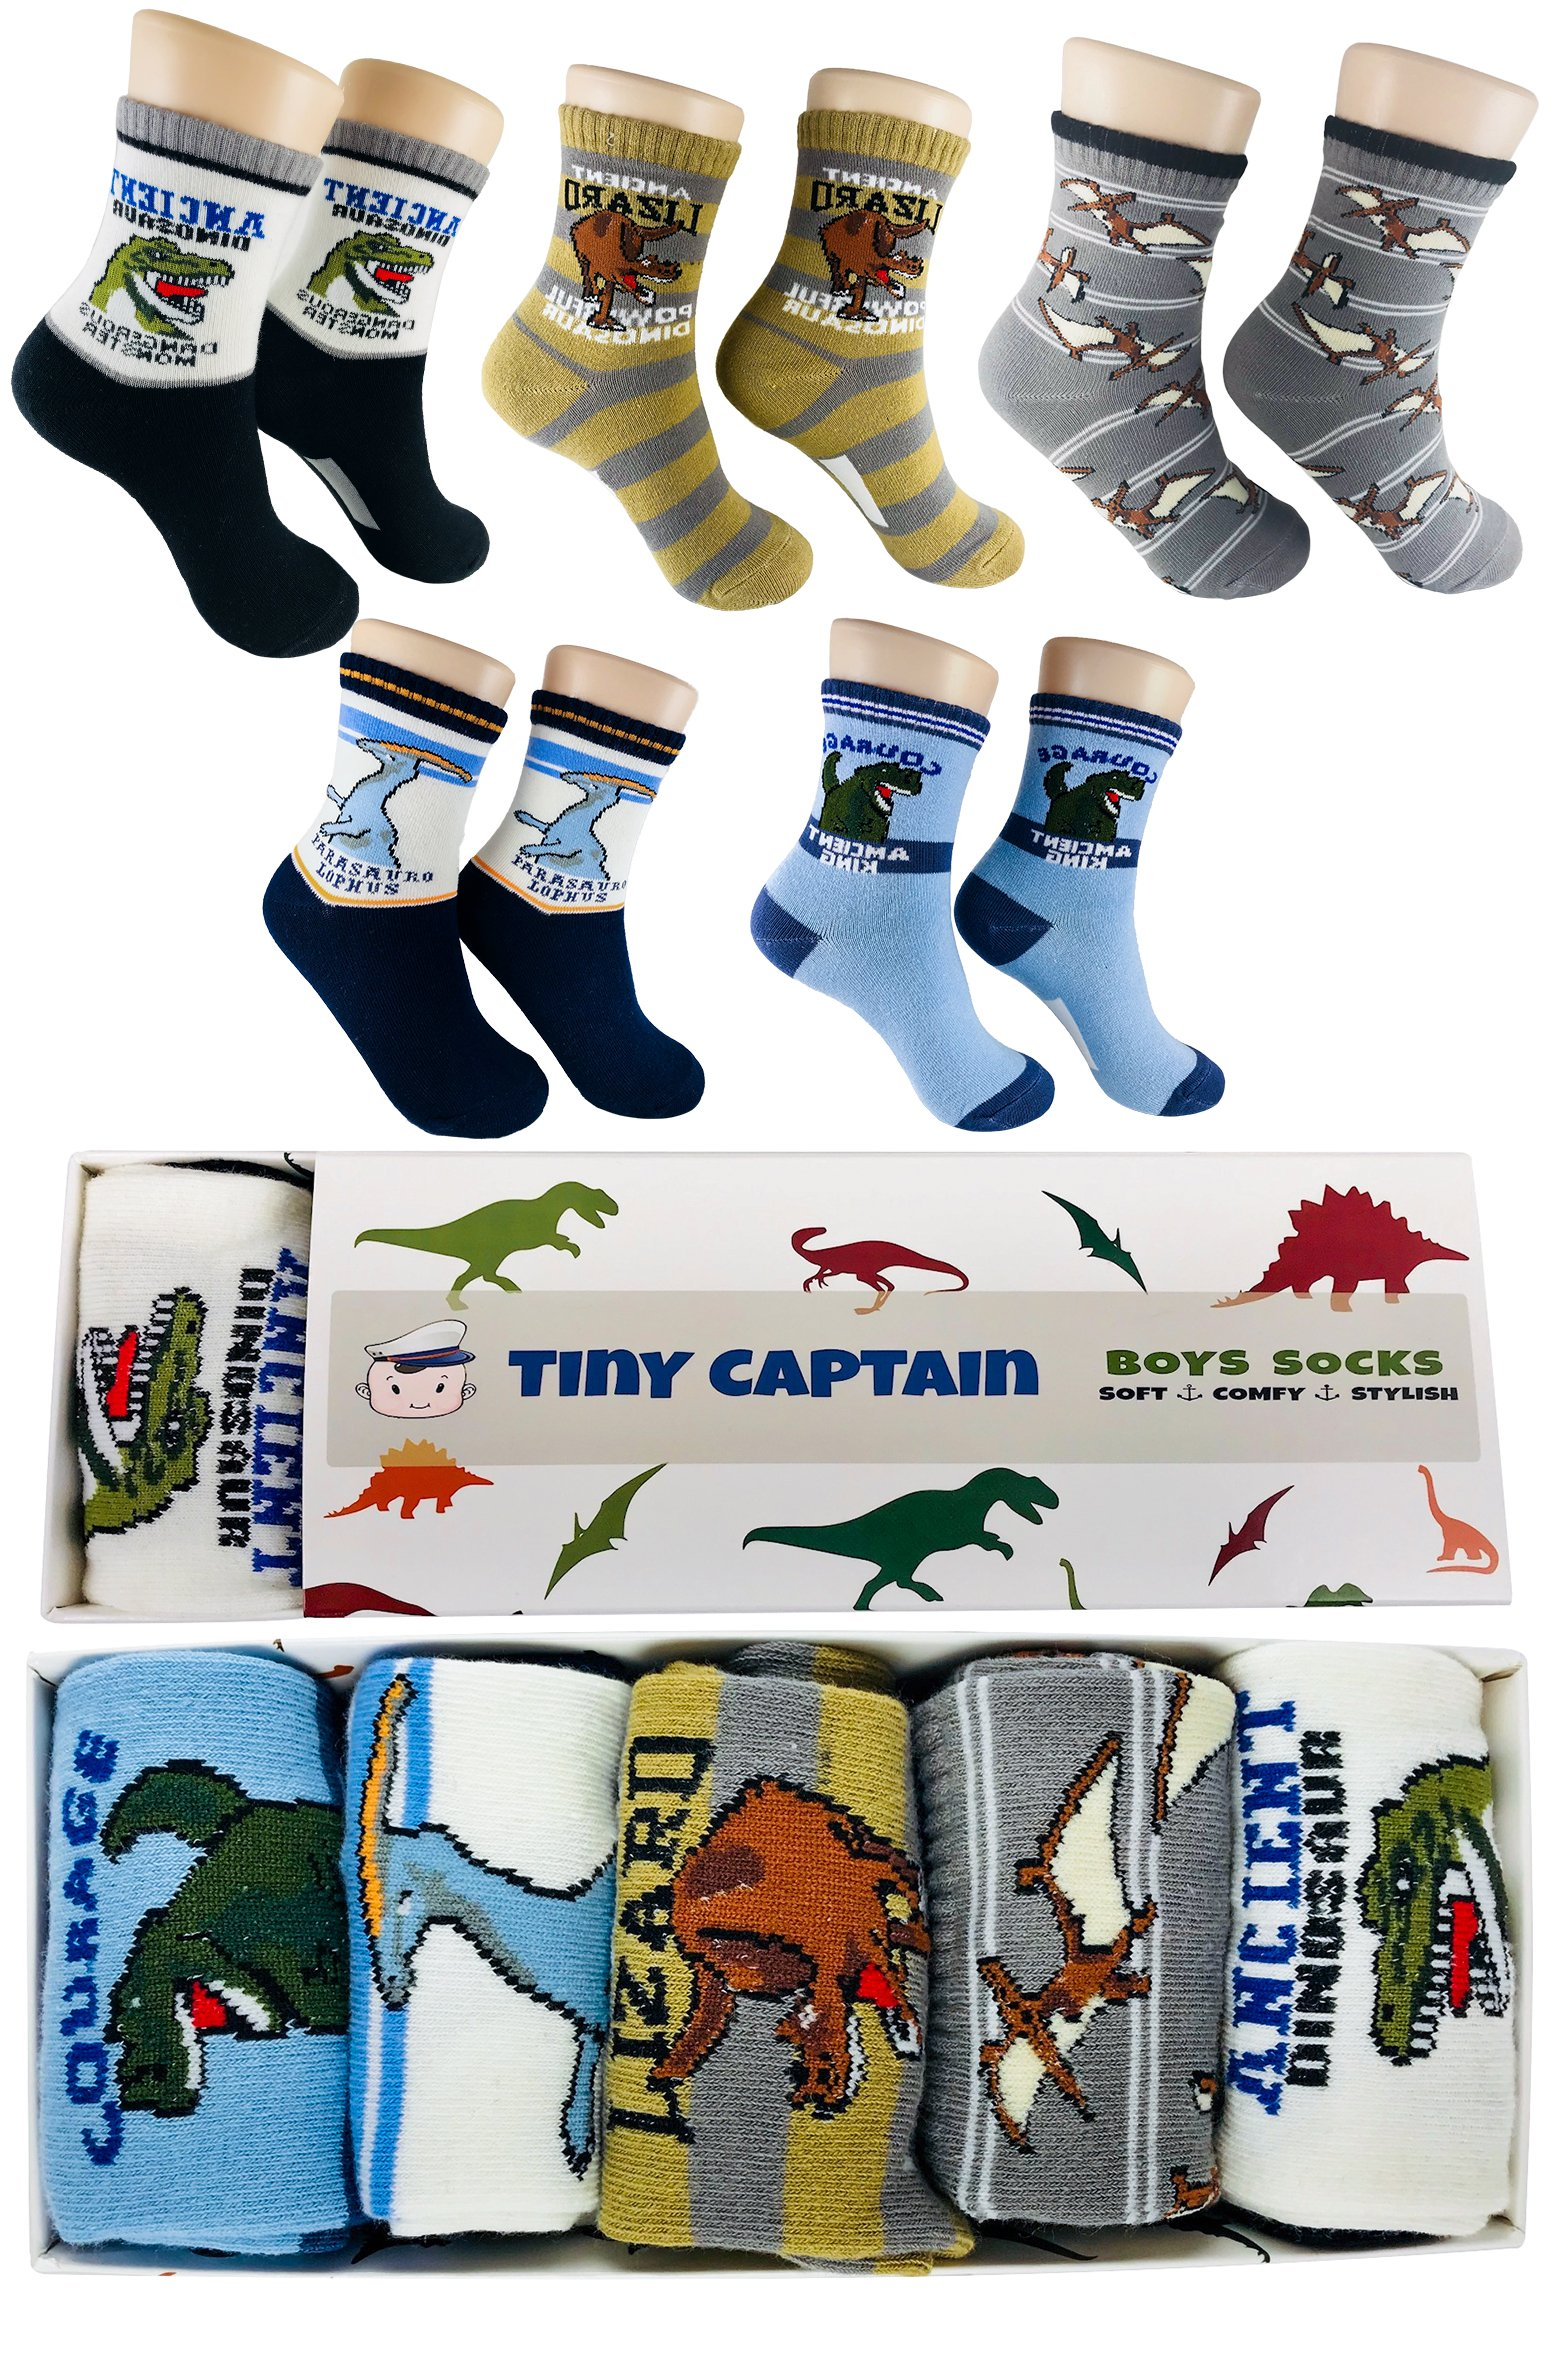 Tiny Captain Boy Dinosaur Socks 4-7 Year Old Boys Crew Cotton Sock Perfect Age 5 Gift Set (Medium, Blue and Grey)